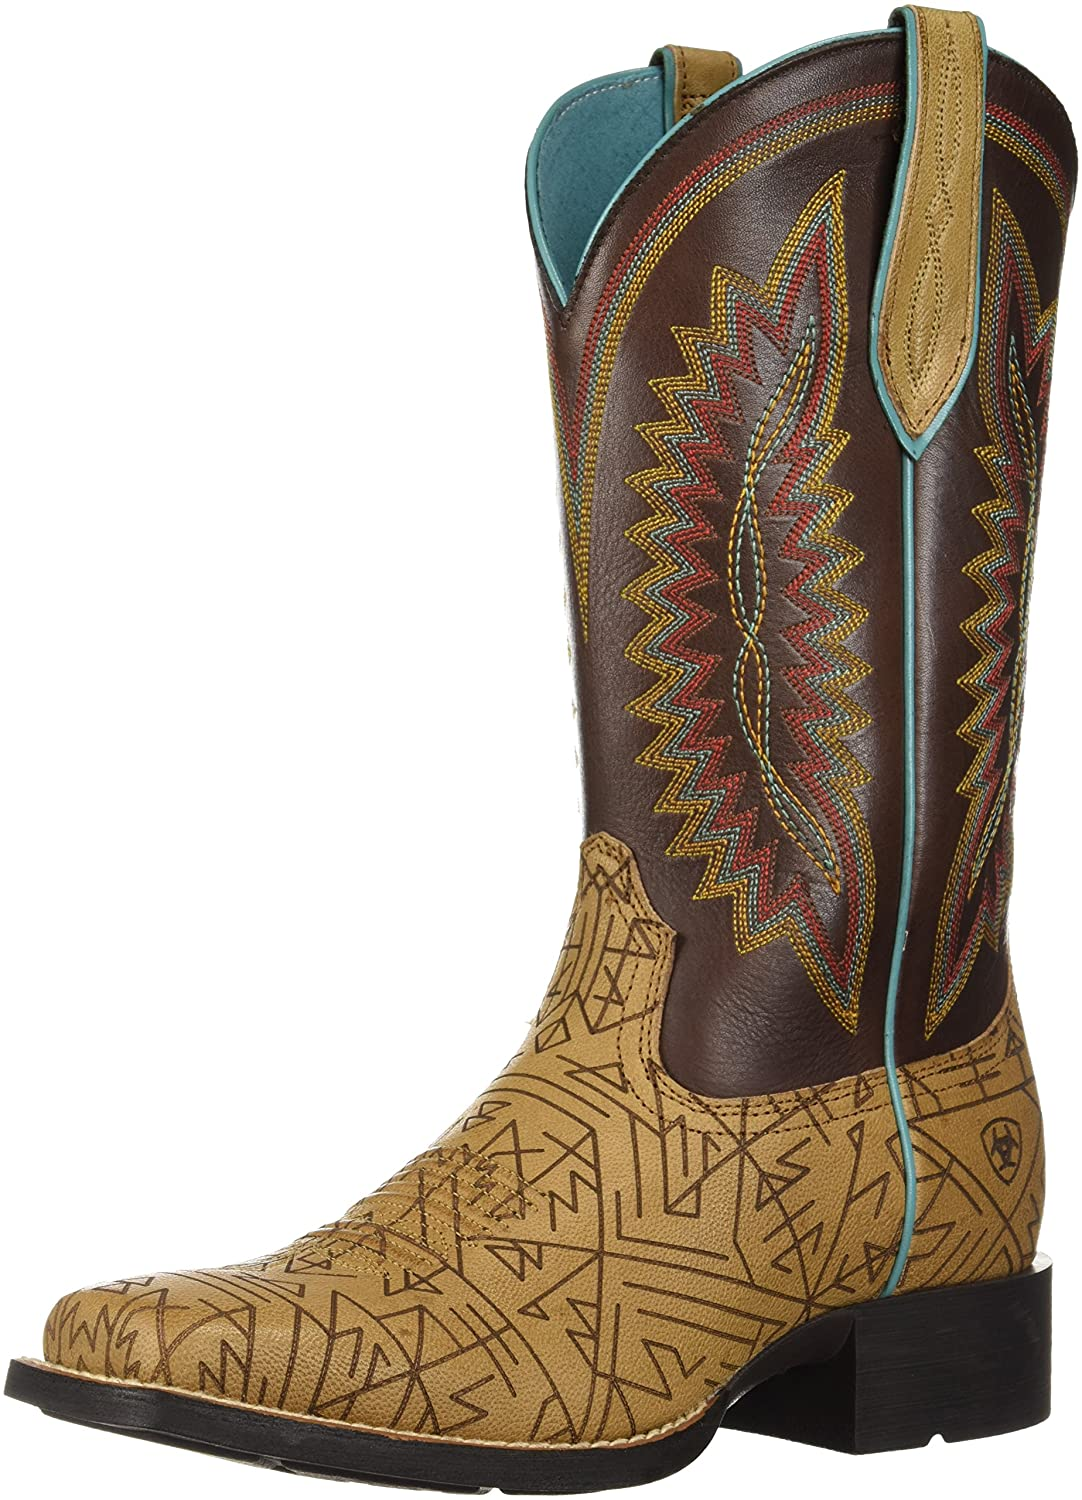 Ariat Women's Quickdraw Legacy Western Boot B076RCXF7R 9 B(M) US|Sandstorm/Naturally Dark Brown